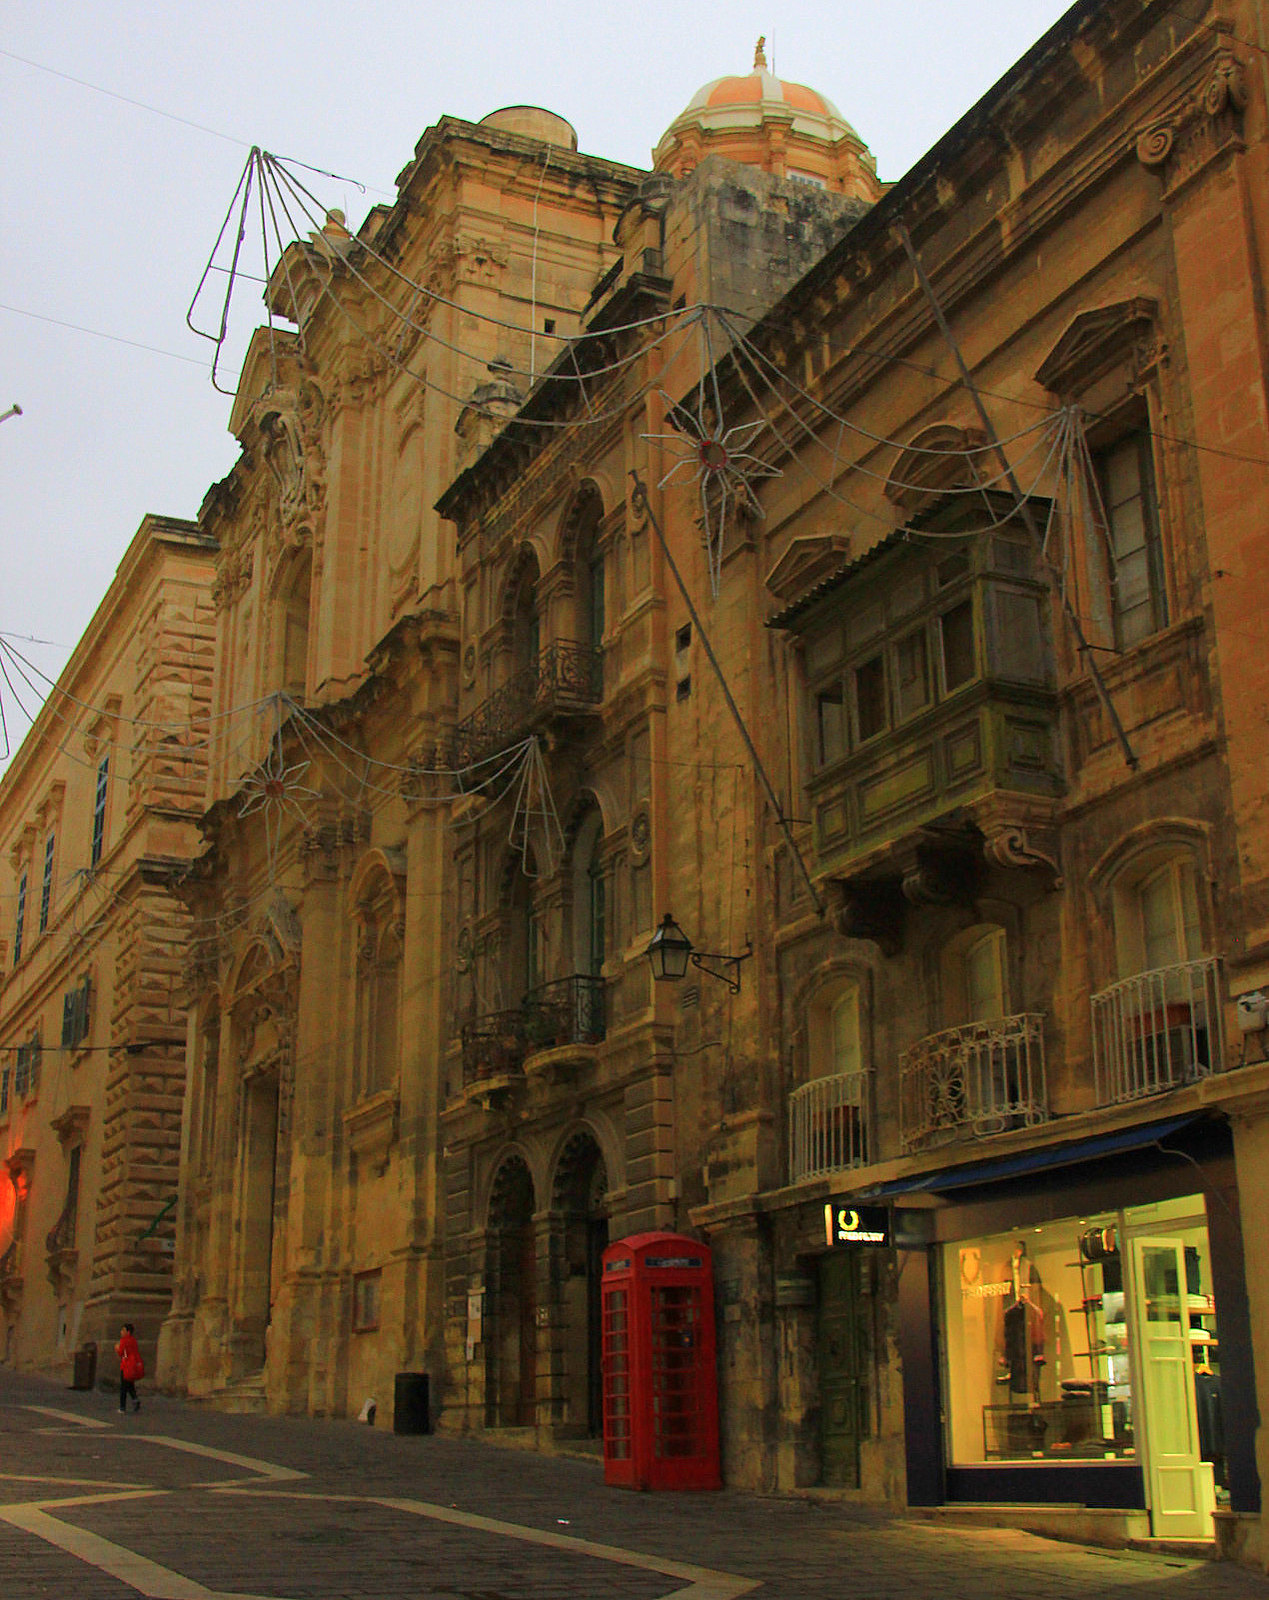 Valletta is a UNESCO World Heritage site